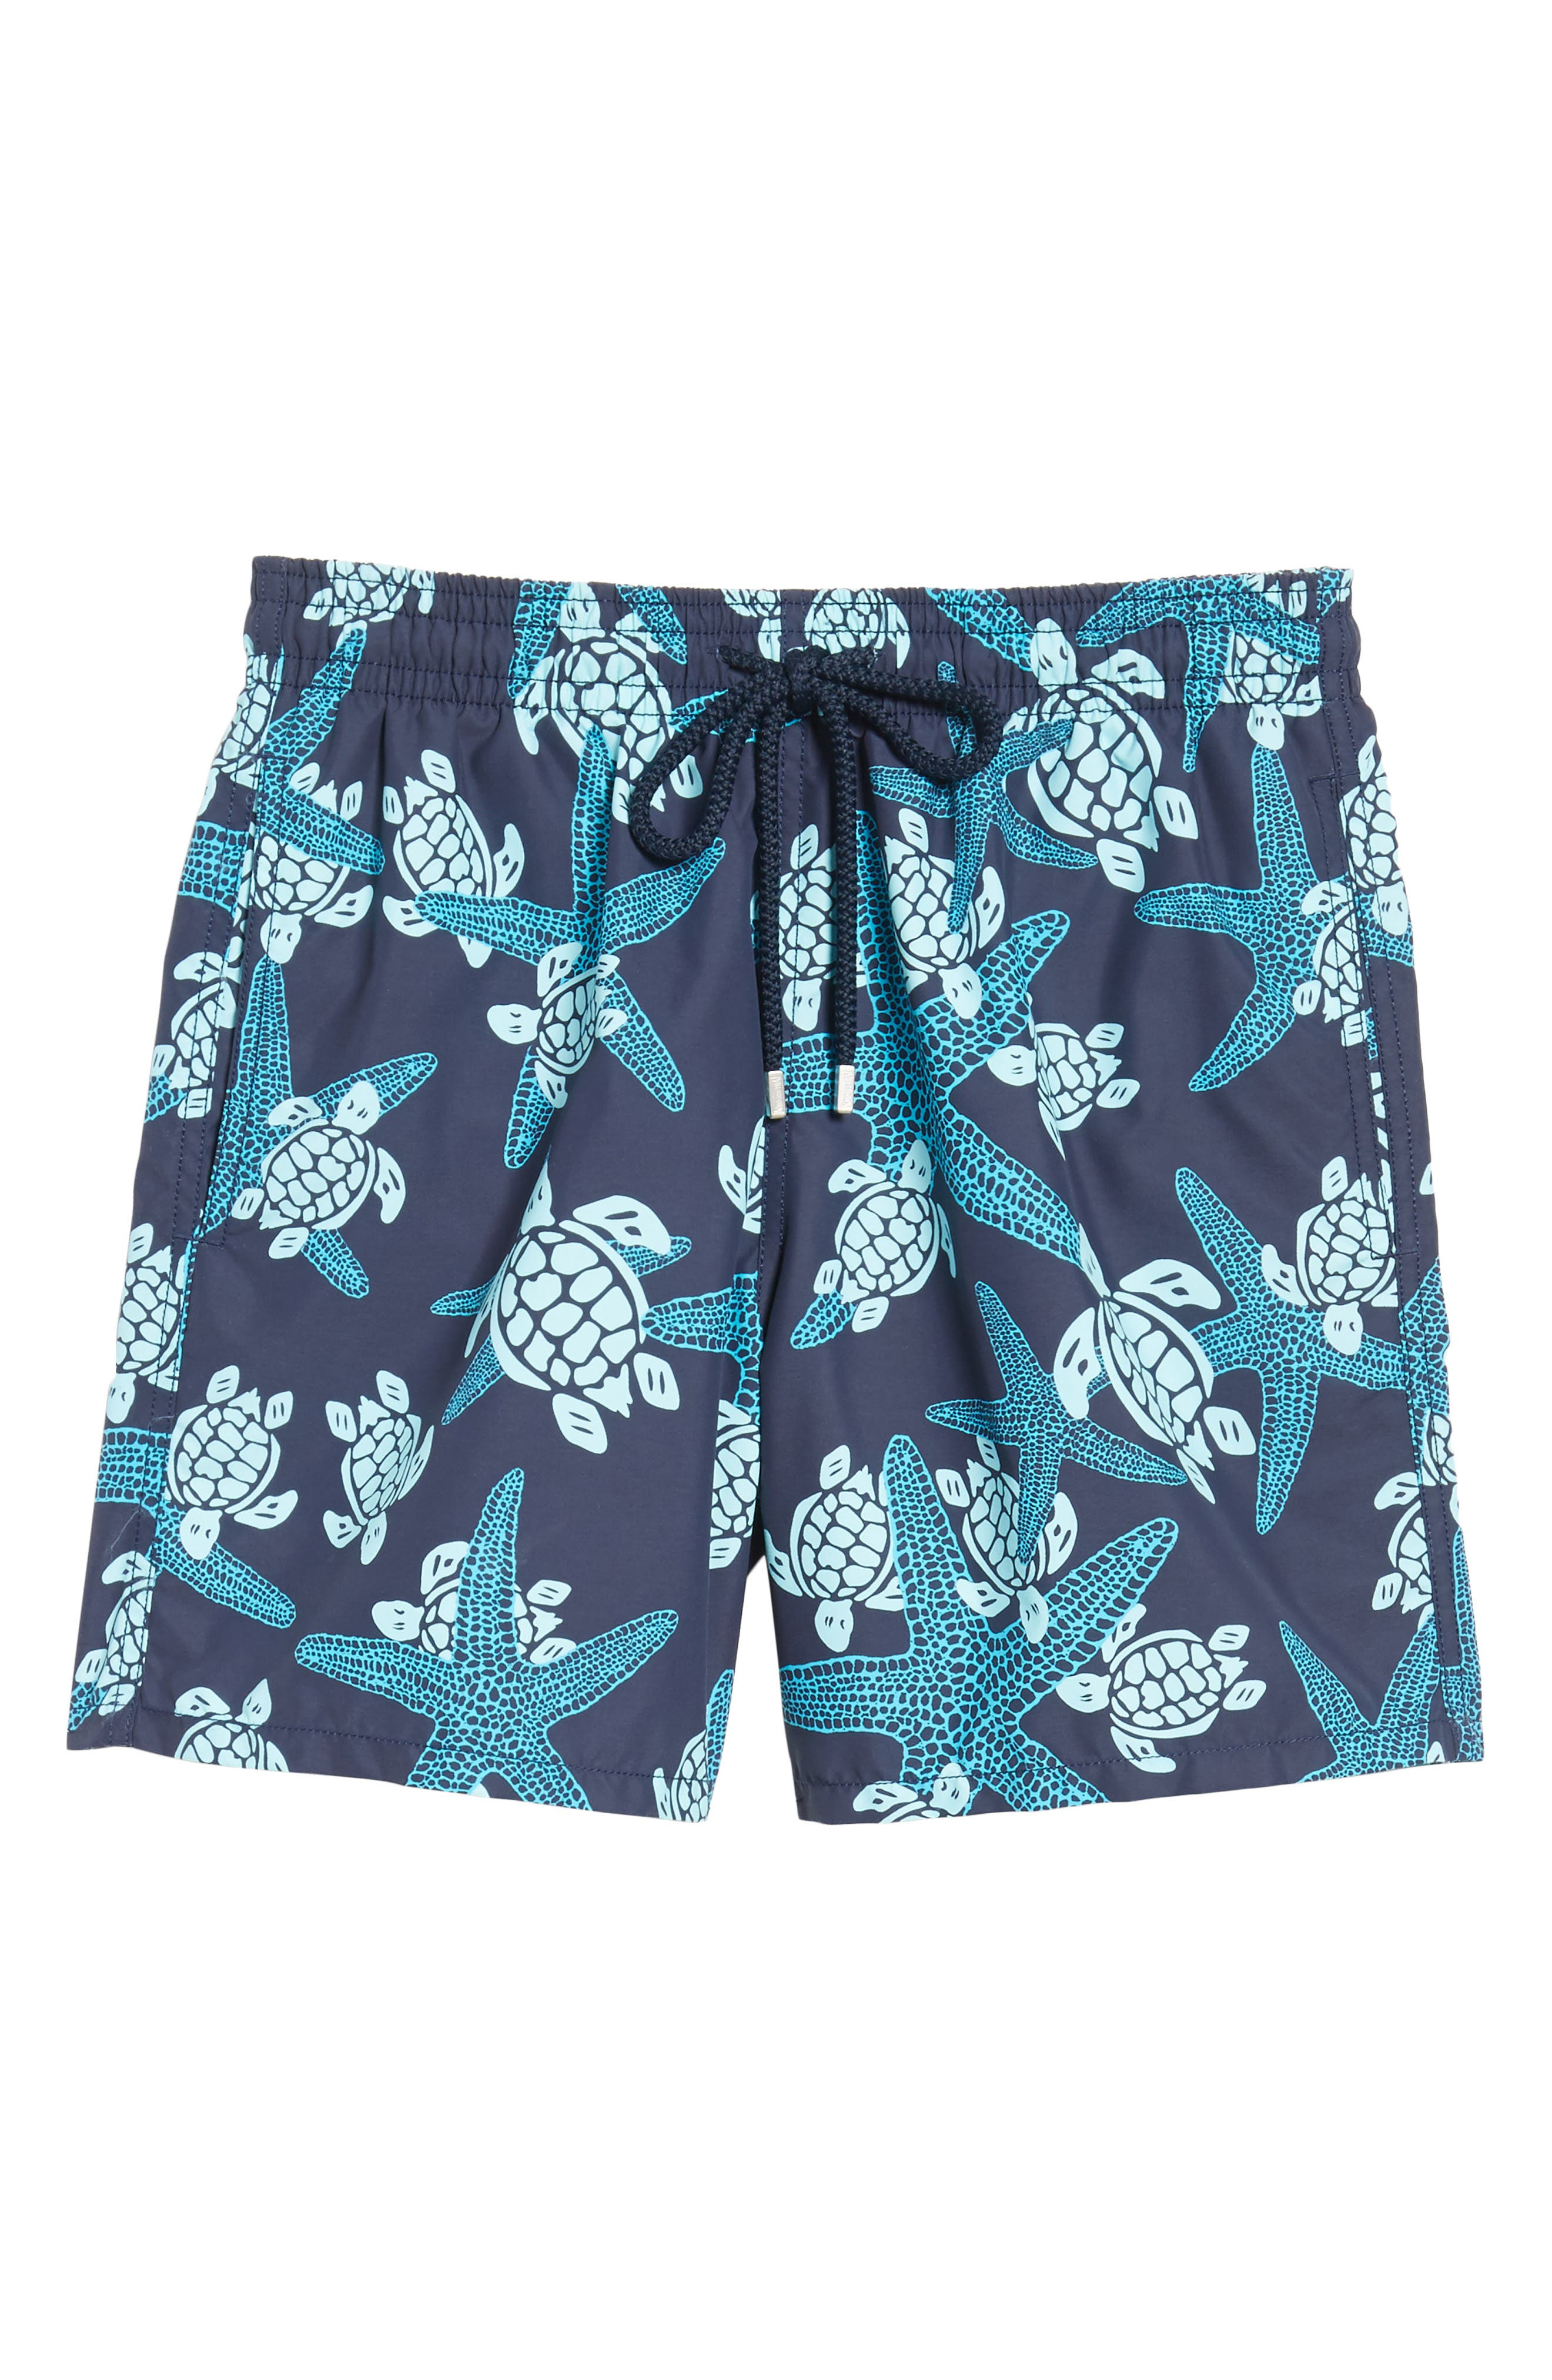 Starlette Turtle Print Swim Trunks,                             Alternate thumbnail 6, color,                             NAVY